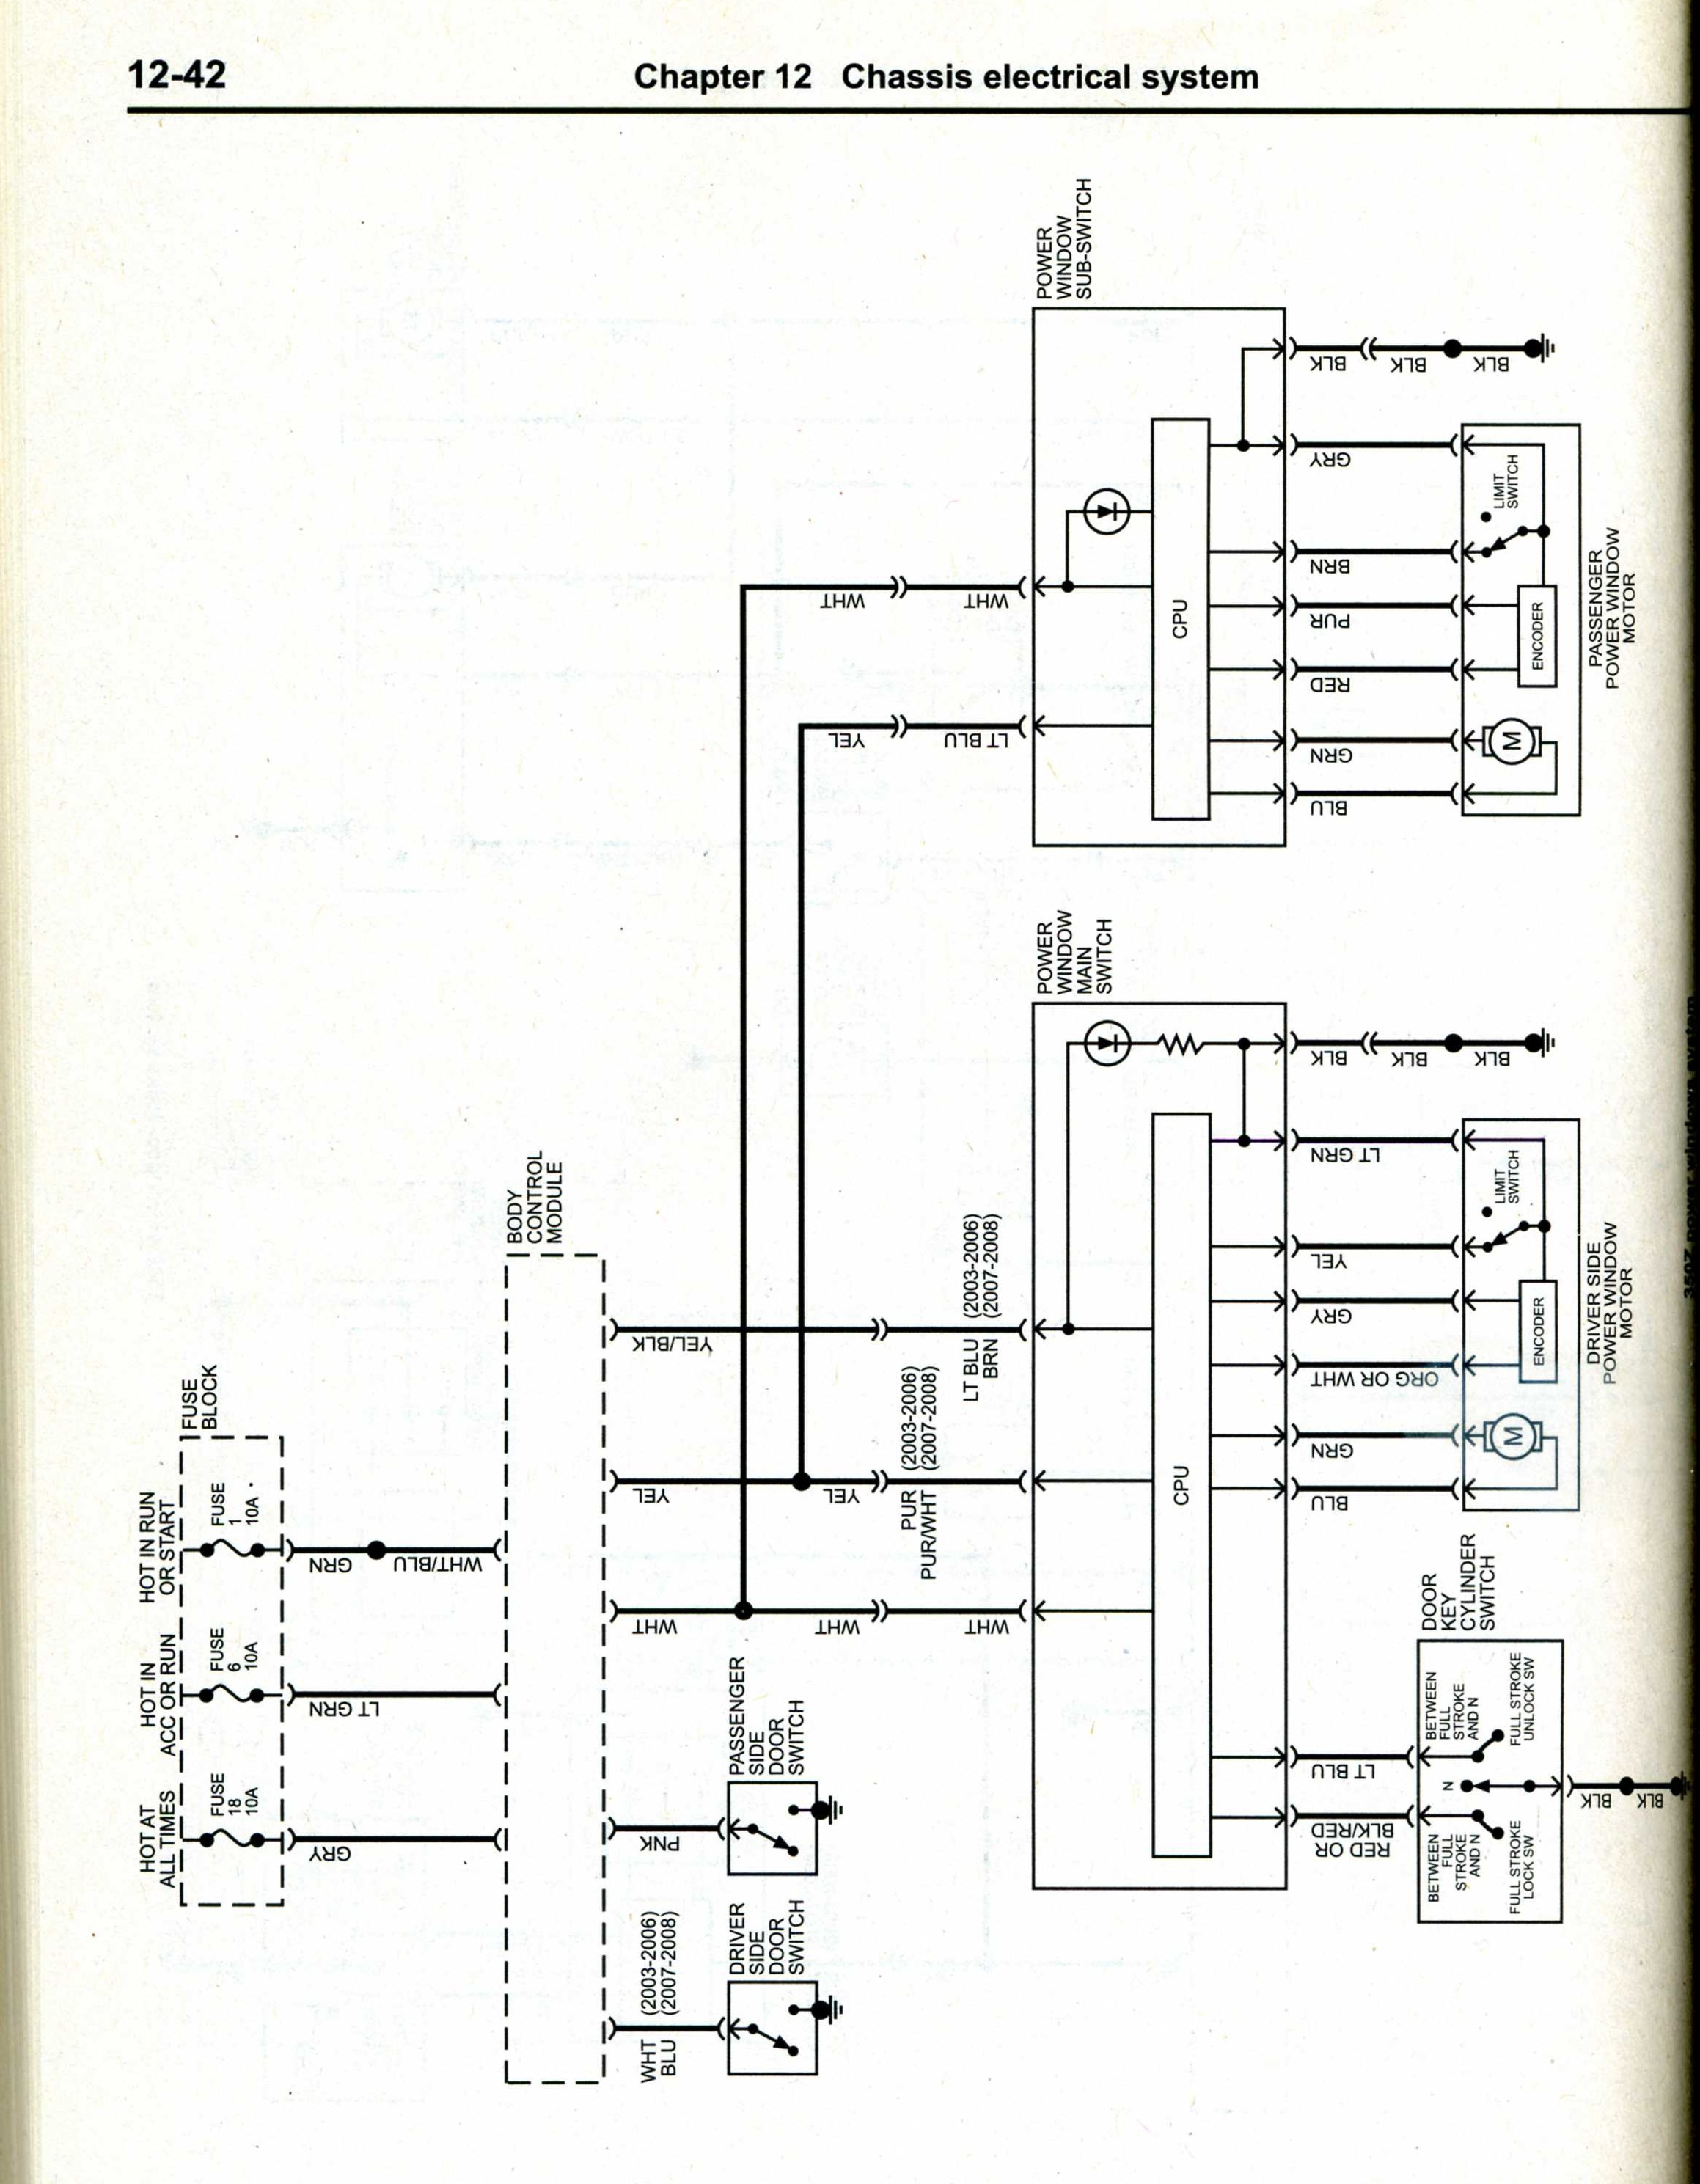 346334d1358011888 need help asap window wiring diagram plz window wiring001?resize\\\\\\=2318%2C2978\\\\\\&ssl\\\\\\=1 vaillant wiring instructions page 6 yondo tech  at reclaimingppi.co